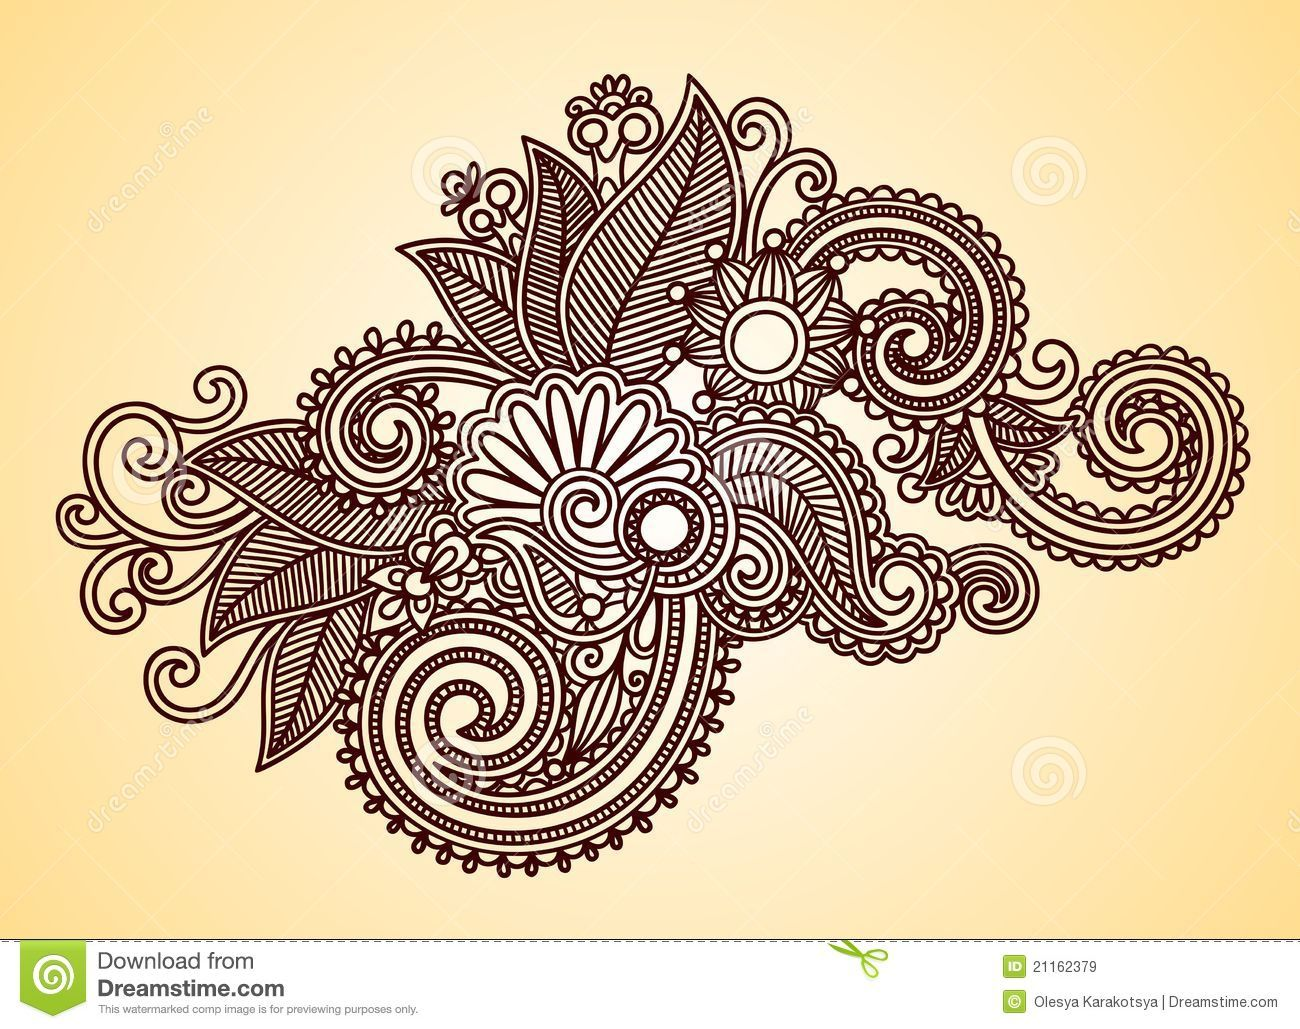 Images For > Henna Design Drawing | Henna & Mehndi Designs ...